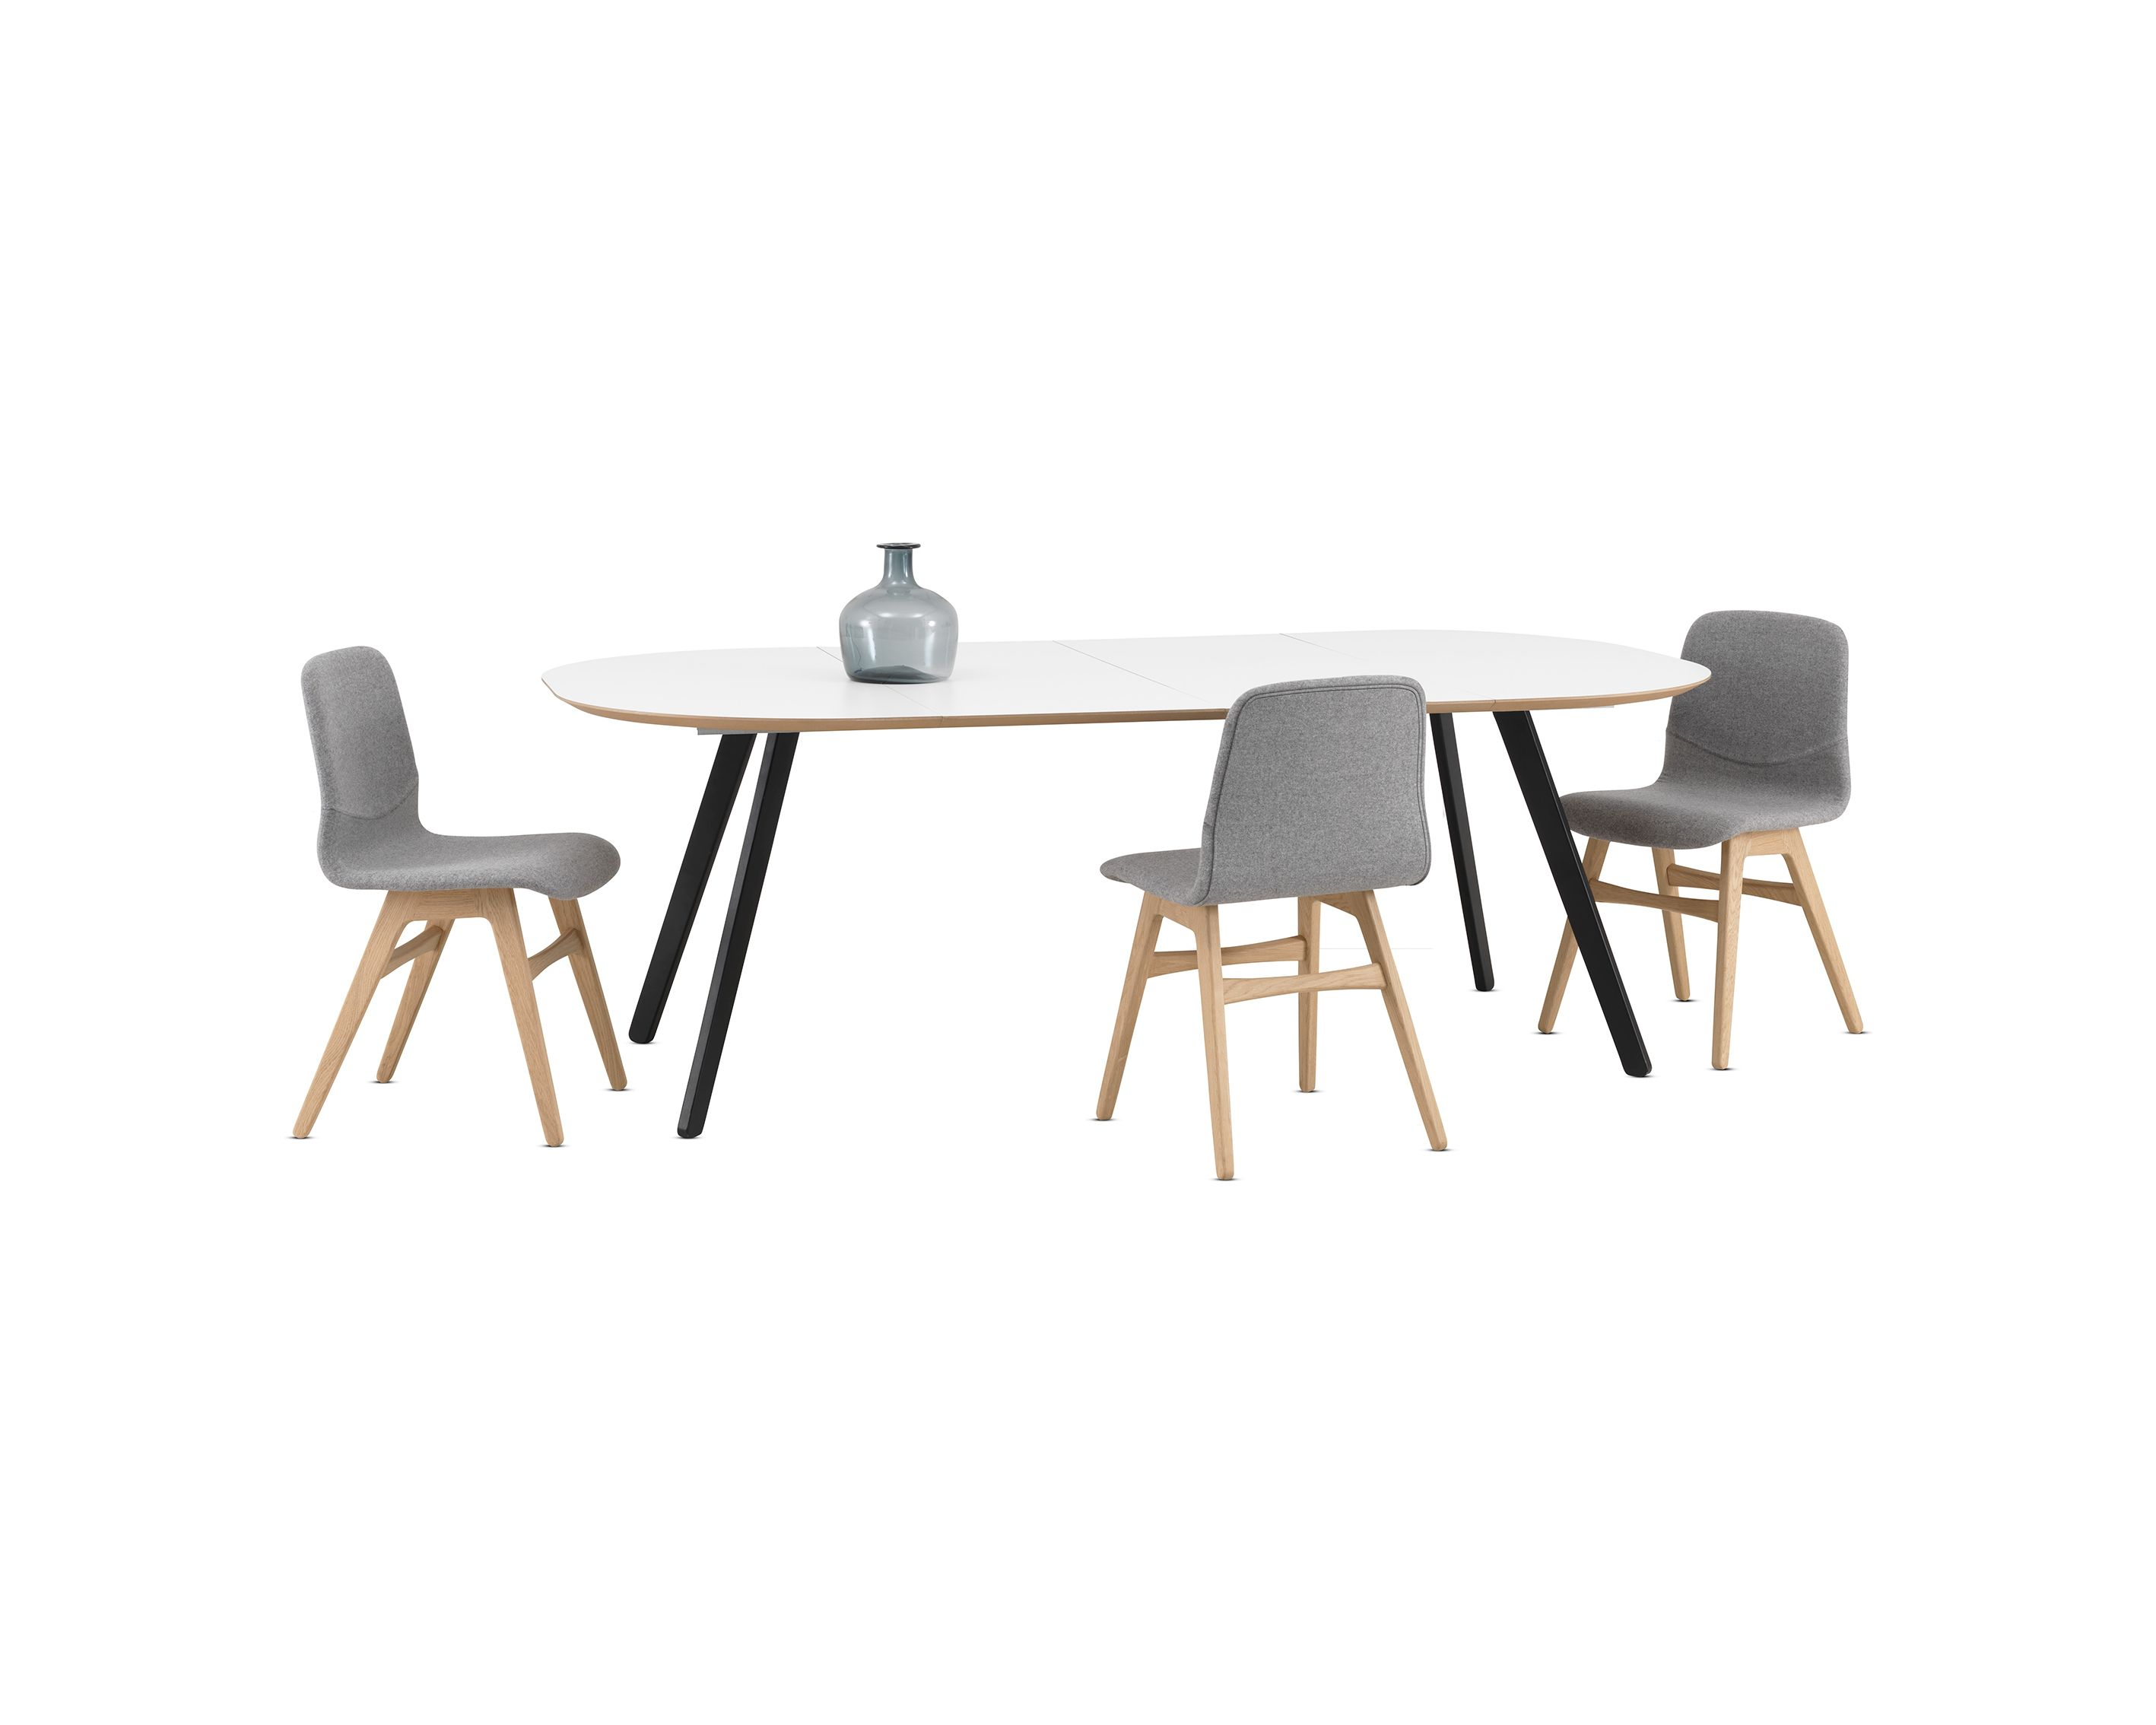 87 Extending Dining Room Table Nz Round Expandable